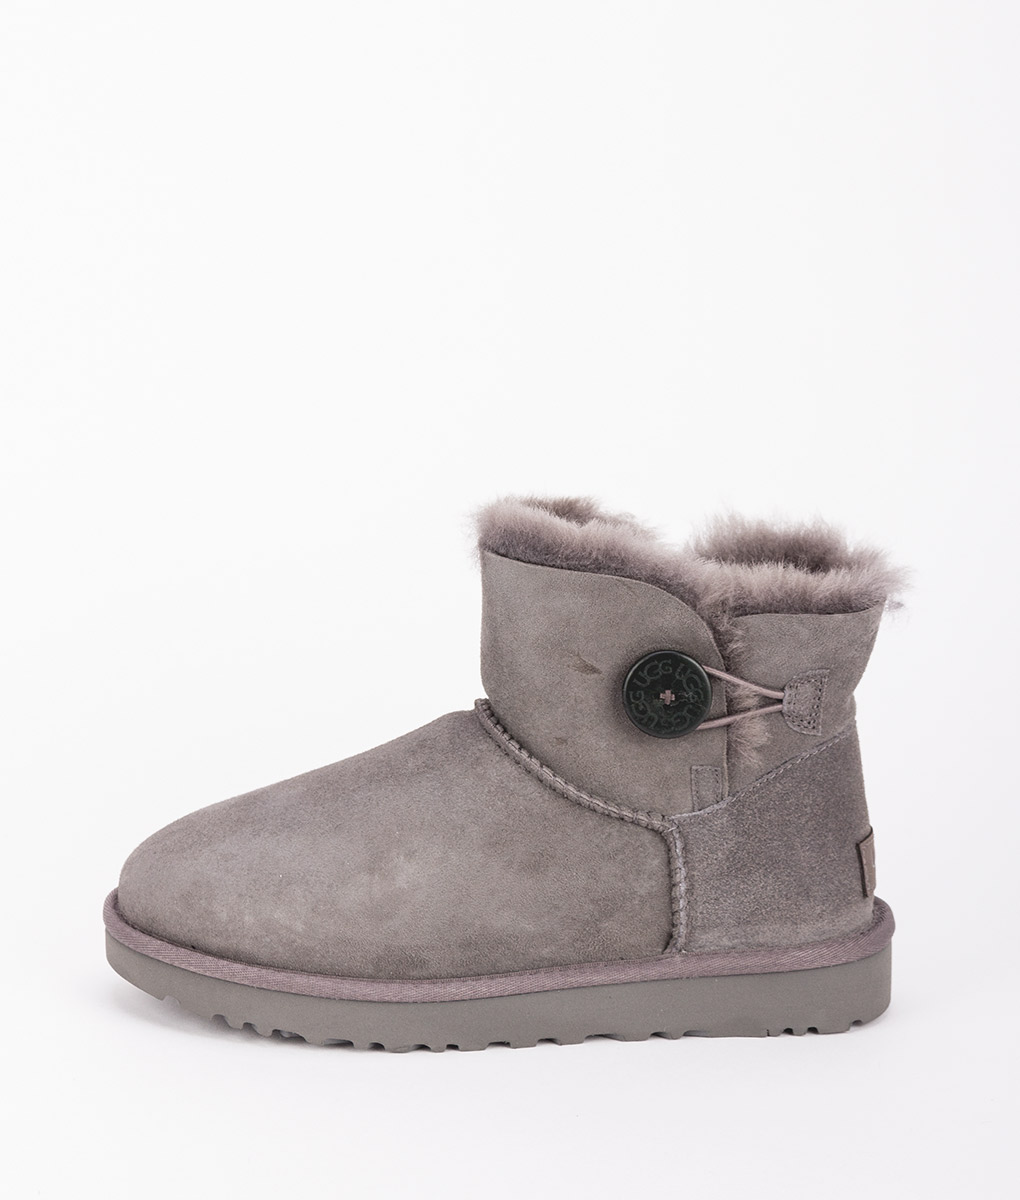 UGG Women Ankle Boots 1016422 MINI BAILEY BUTTON II, Grey